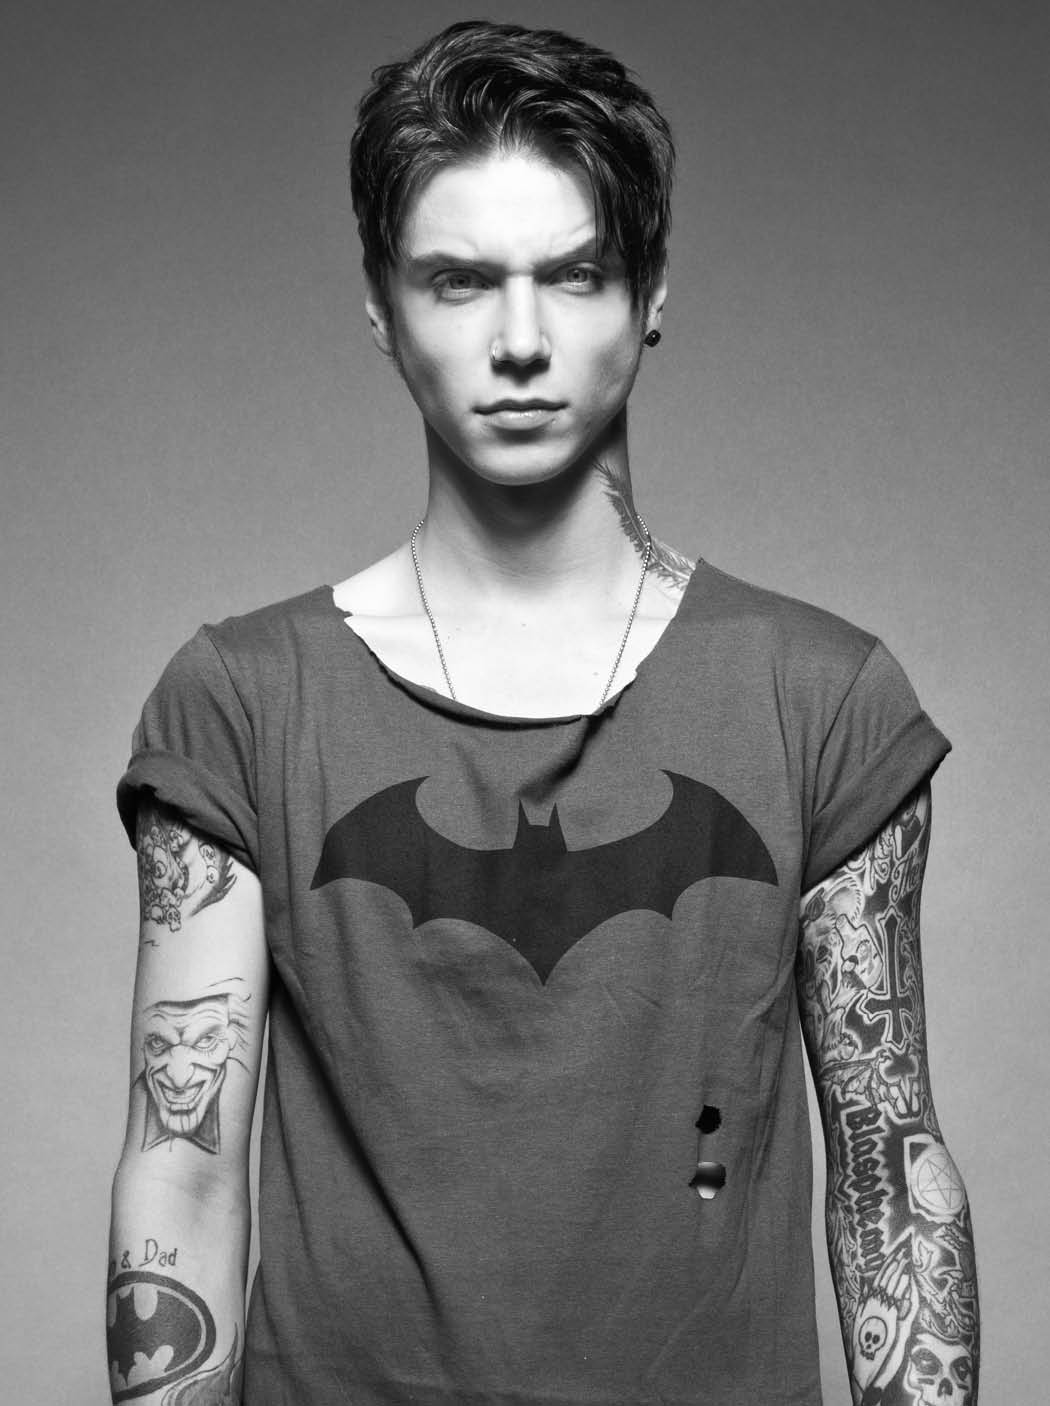 Haha thanks guys! 😝 RT @HotTopic: Post your favorite #HotTopicBiersack photo. Here's ours http://t.co/jWyRVt0rqp